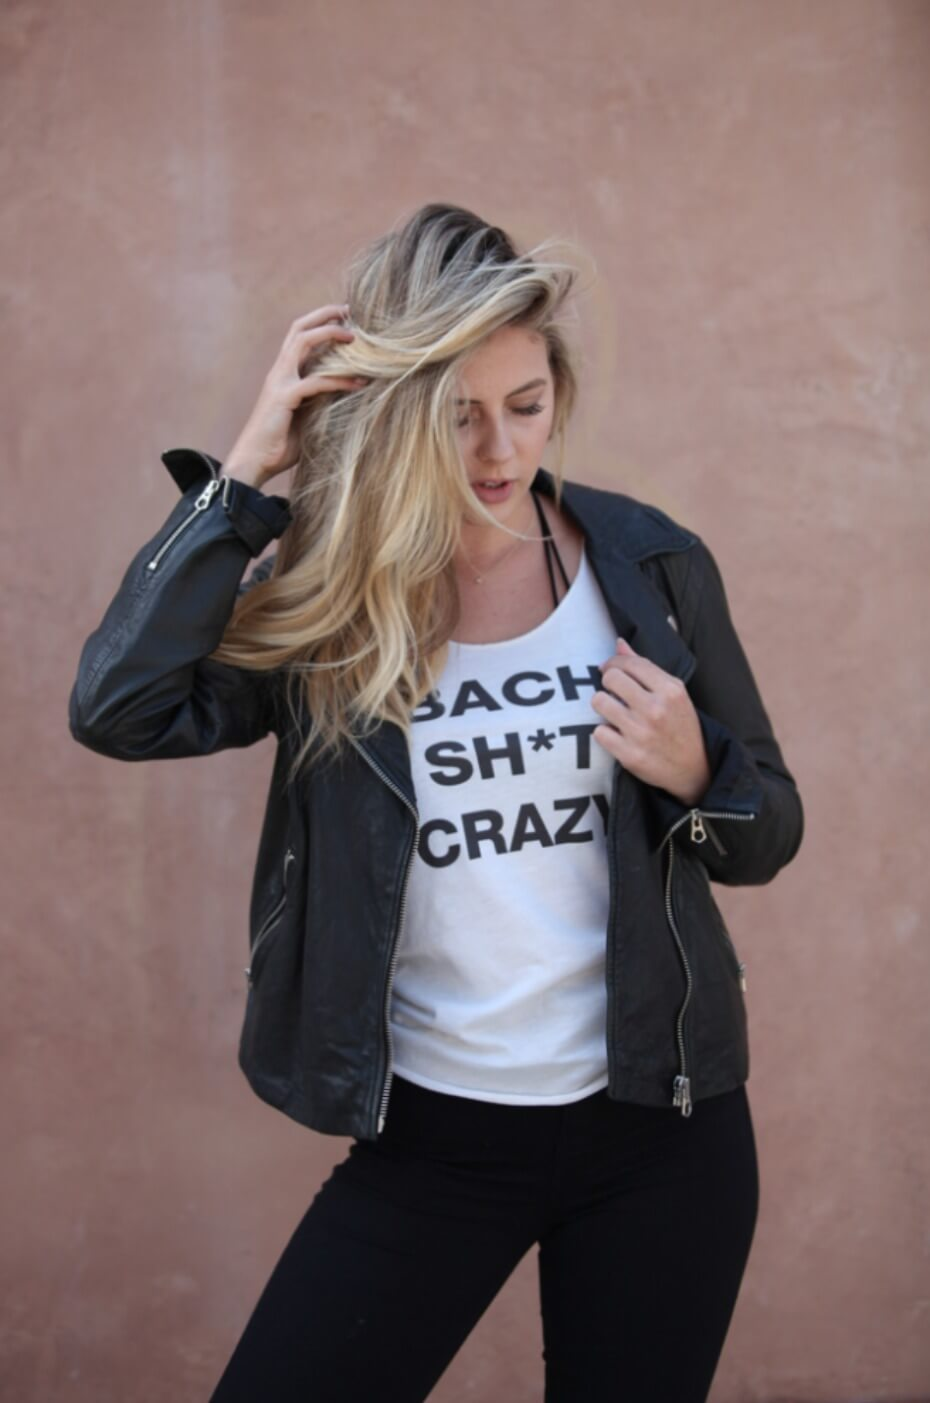 Bach Shit Crazy Bridal Party Tank from Wedding Chicks Shop